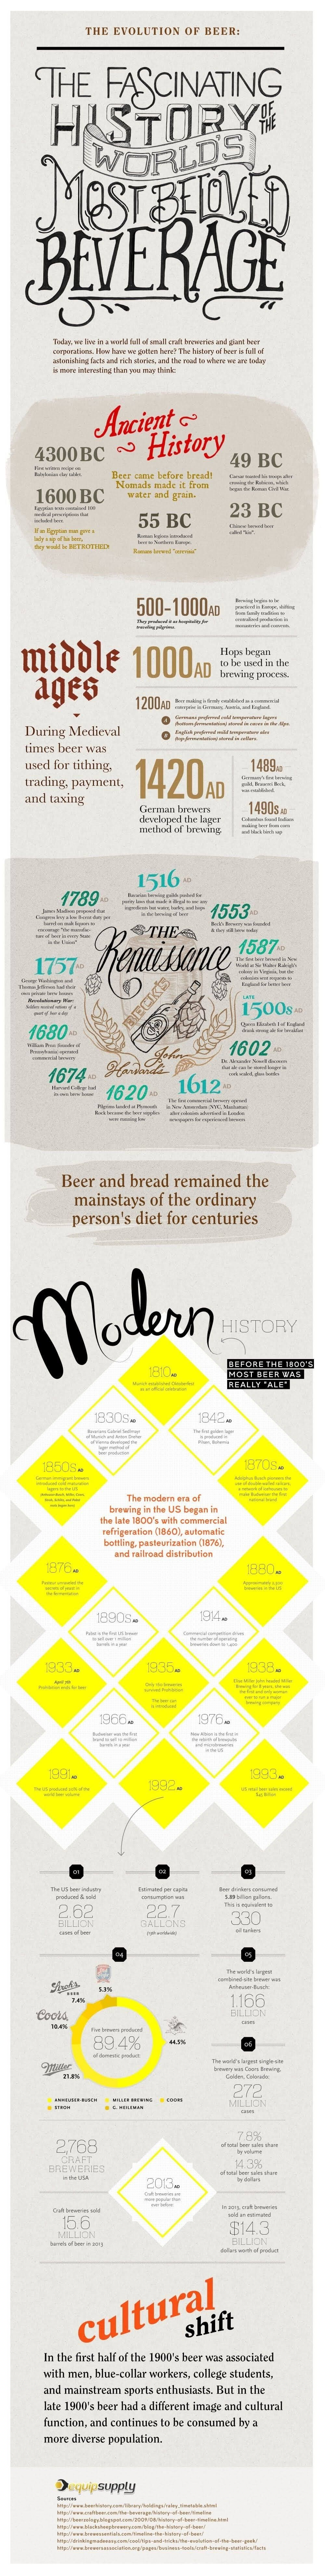 The Evolution of Beer #infographic